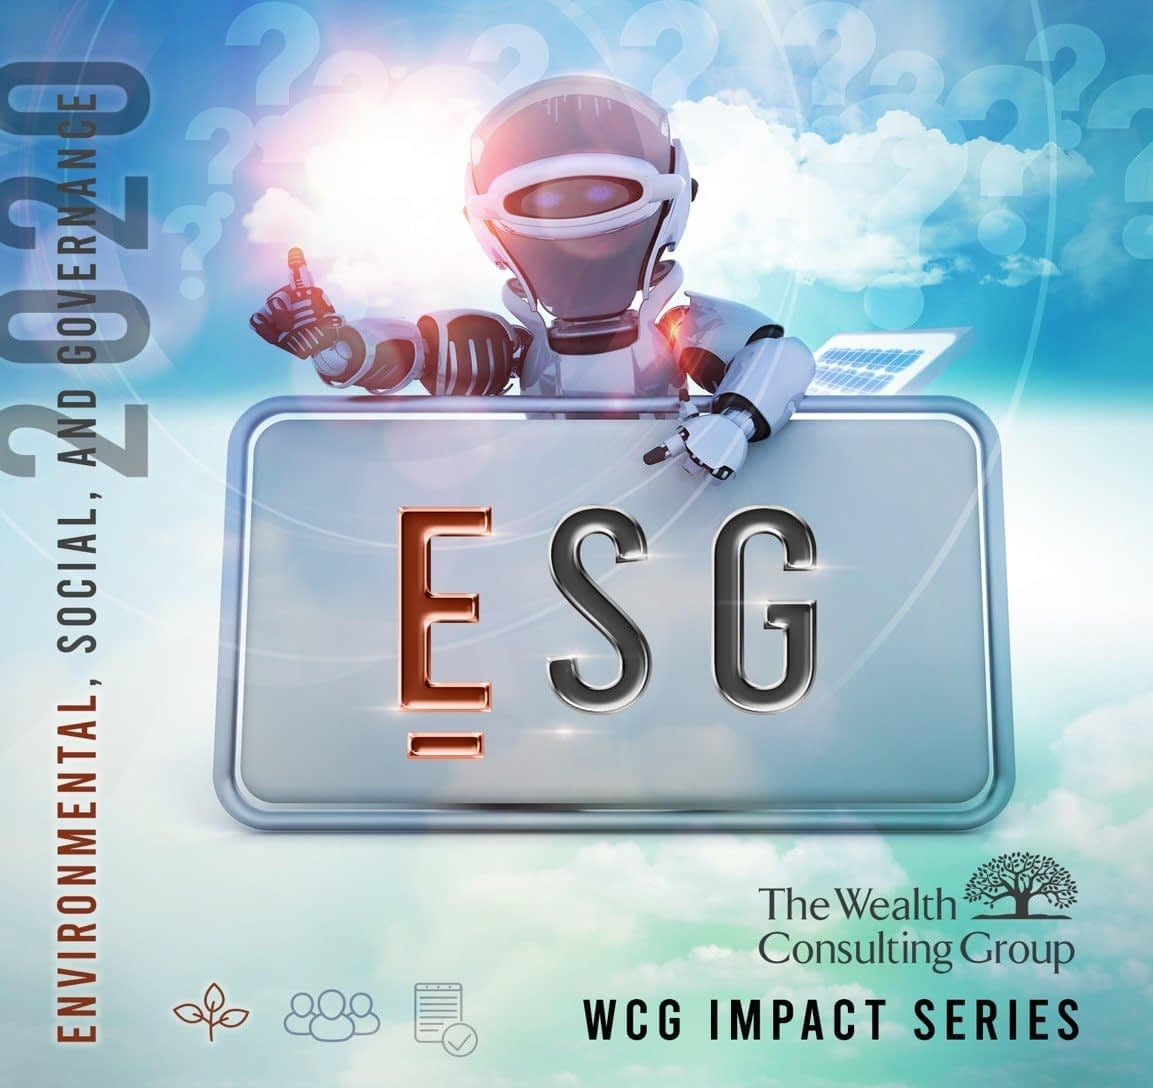 , WCG Impact Series: Sustainability doesn't mean Green, TheCircularEconomy.com